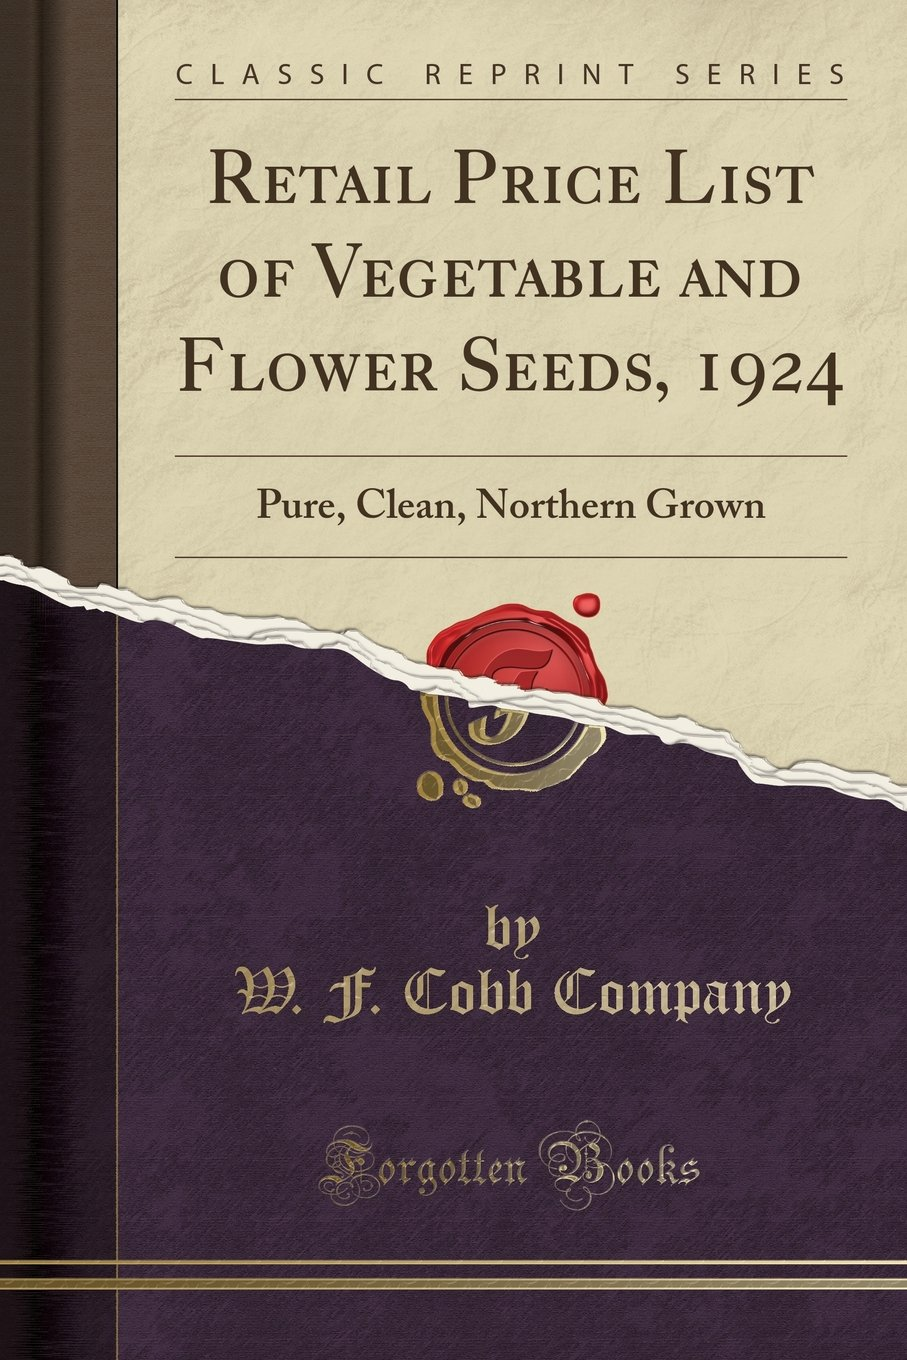 Download Retail Price List of Vegetable and Flower Seeds, 1924: Pure, Clean, Northern Grown (Classic Reprint) ebook